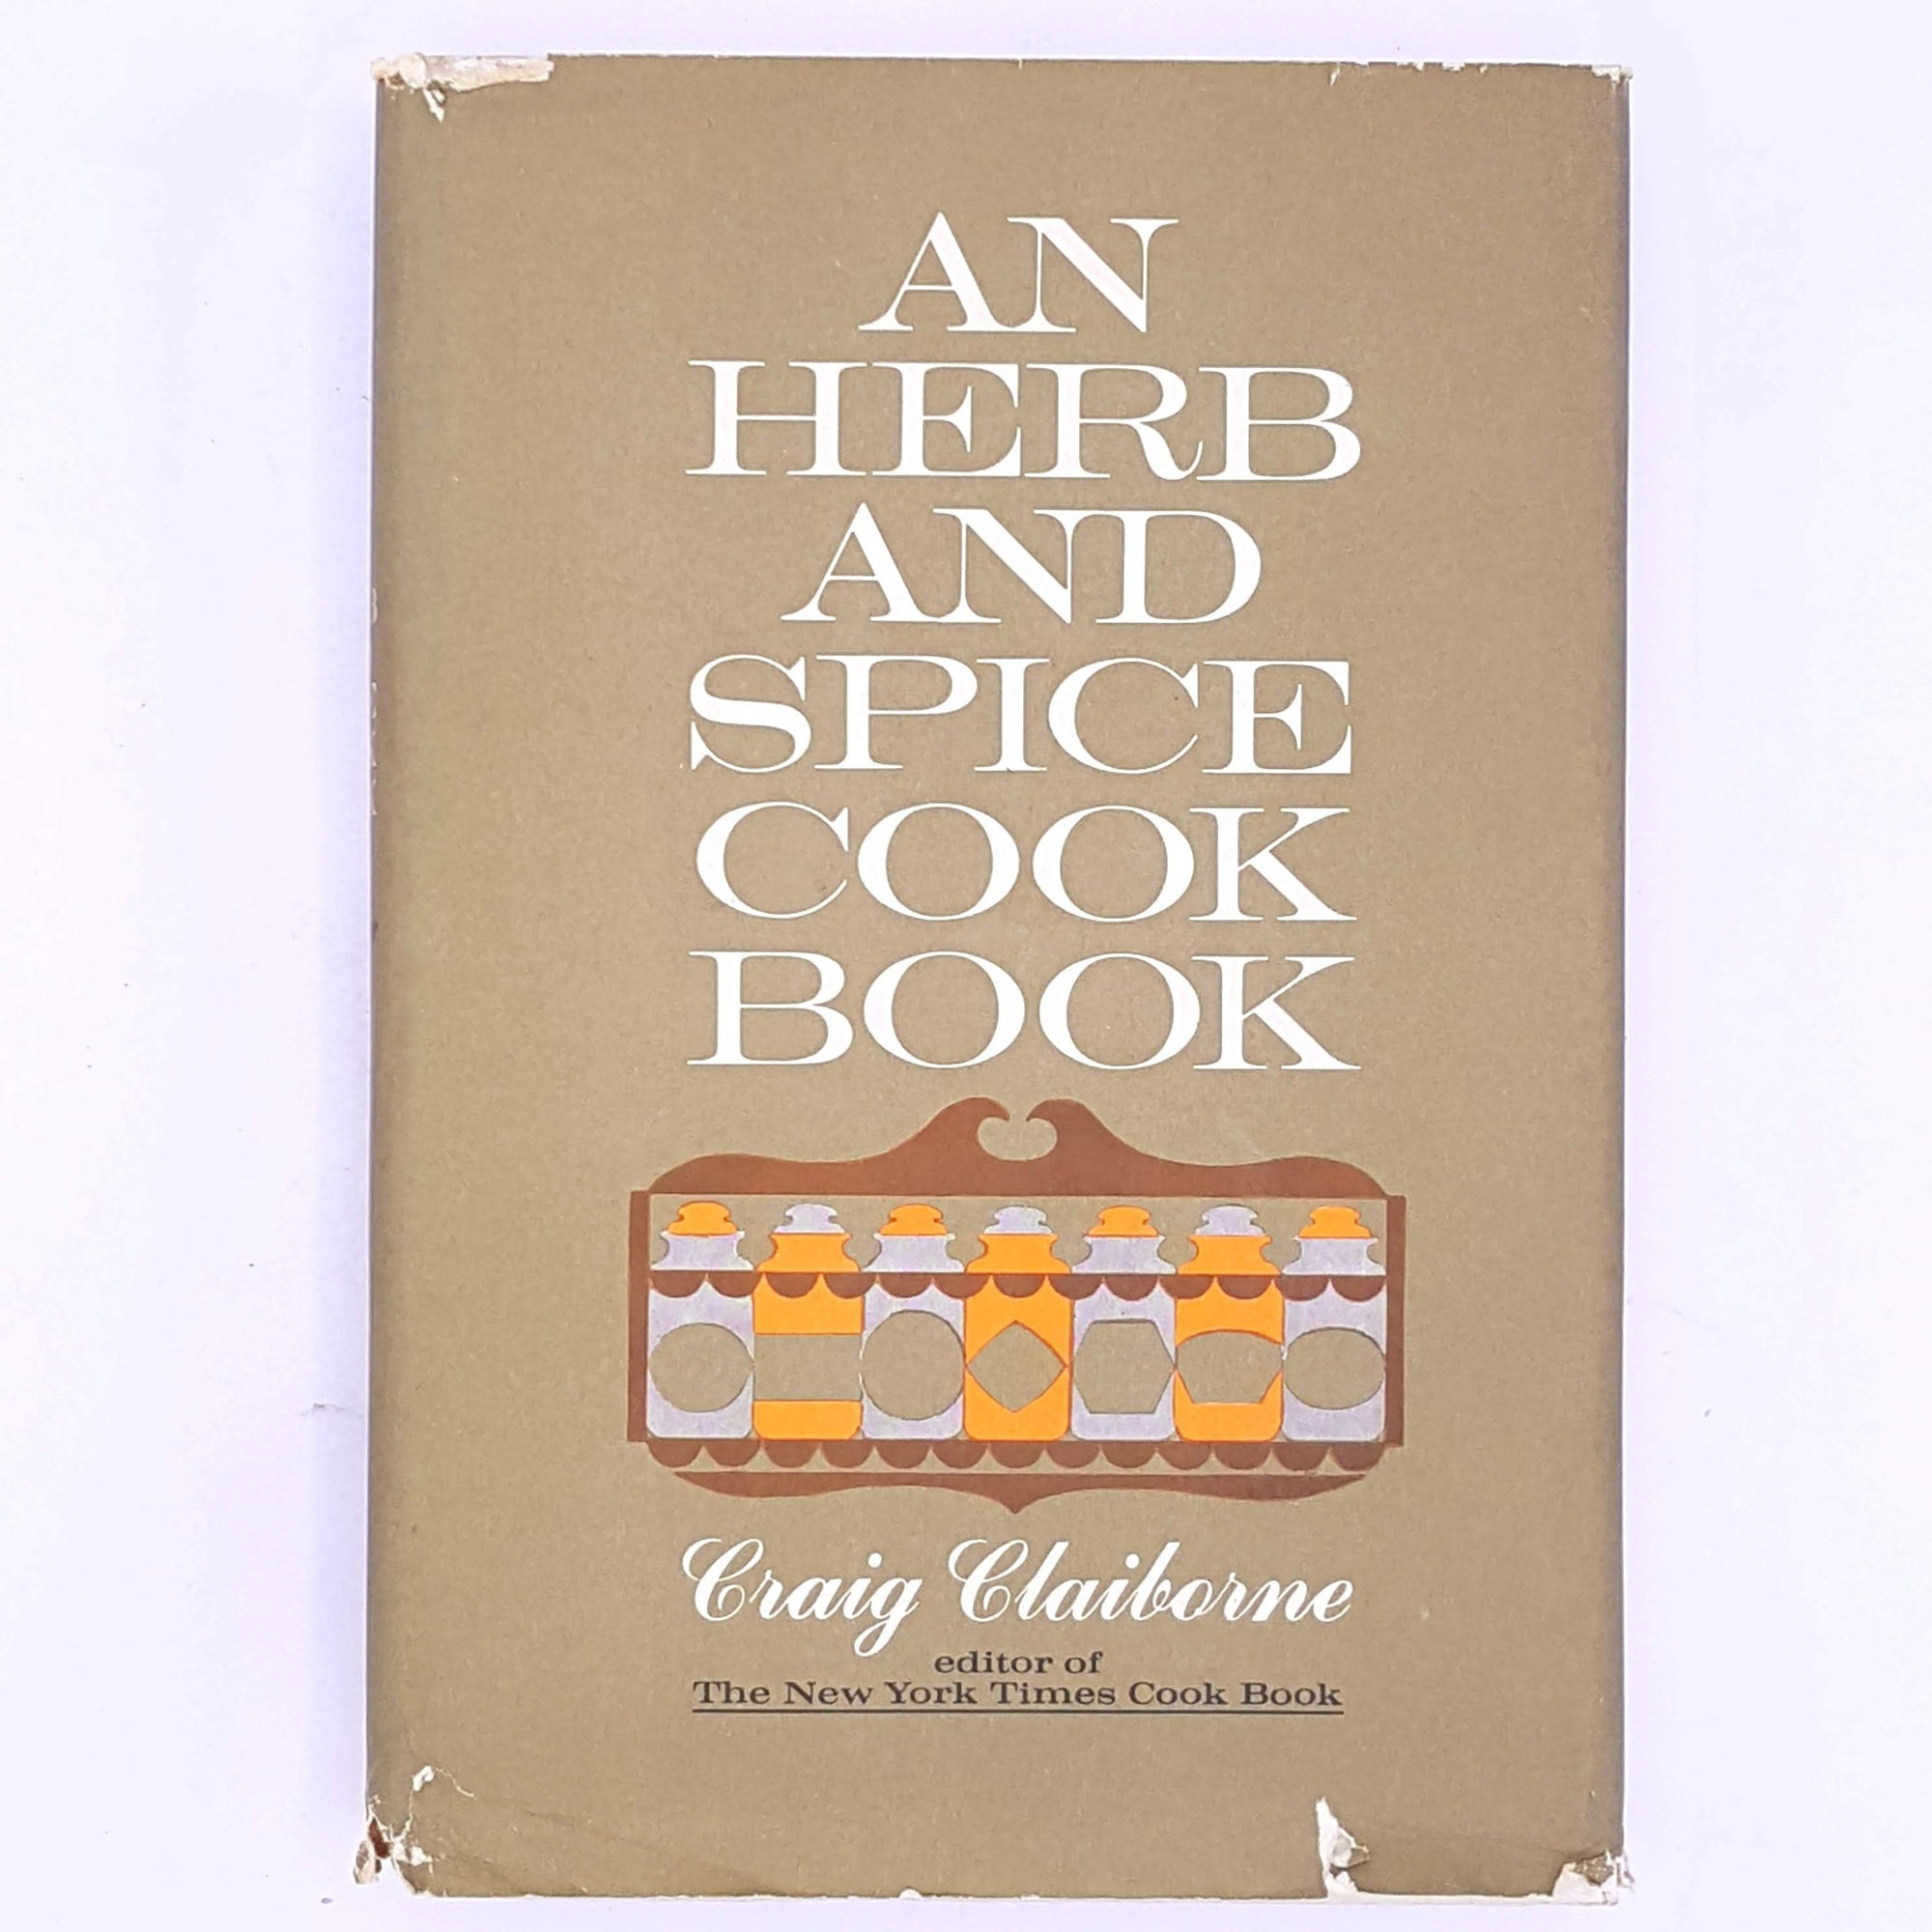 An Herb And Spice Cook Book, Craig Claiborne